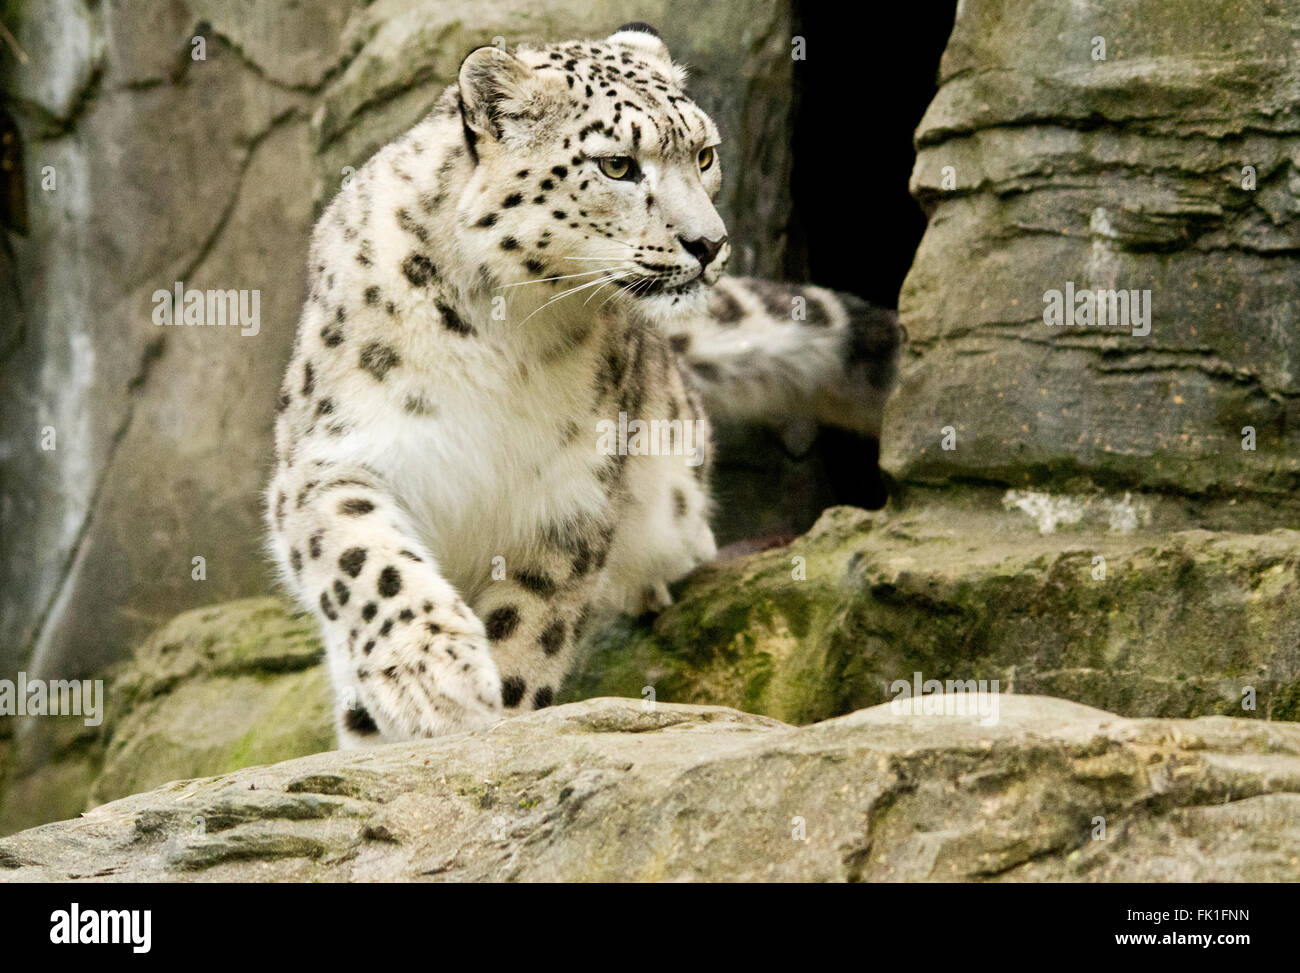 Snow leopard from the front view in landscape format leaving den. Captured animal enclosure at Marwell zoo. Conservation - Stock Image